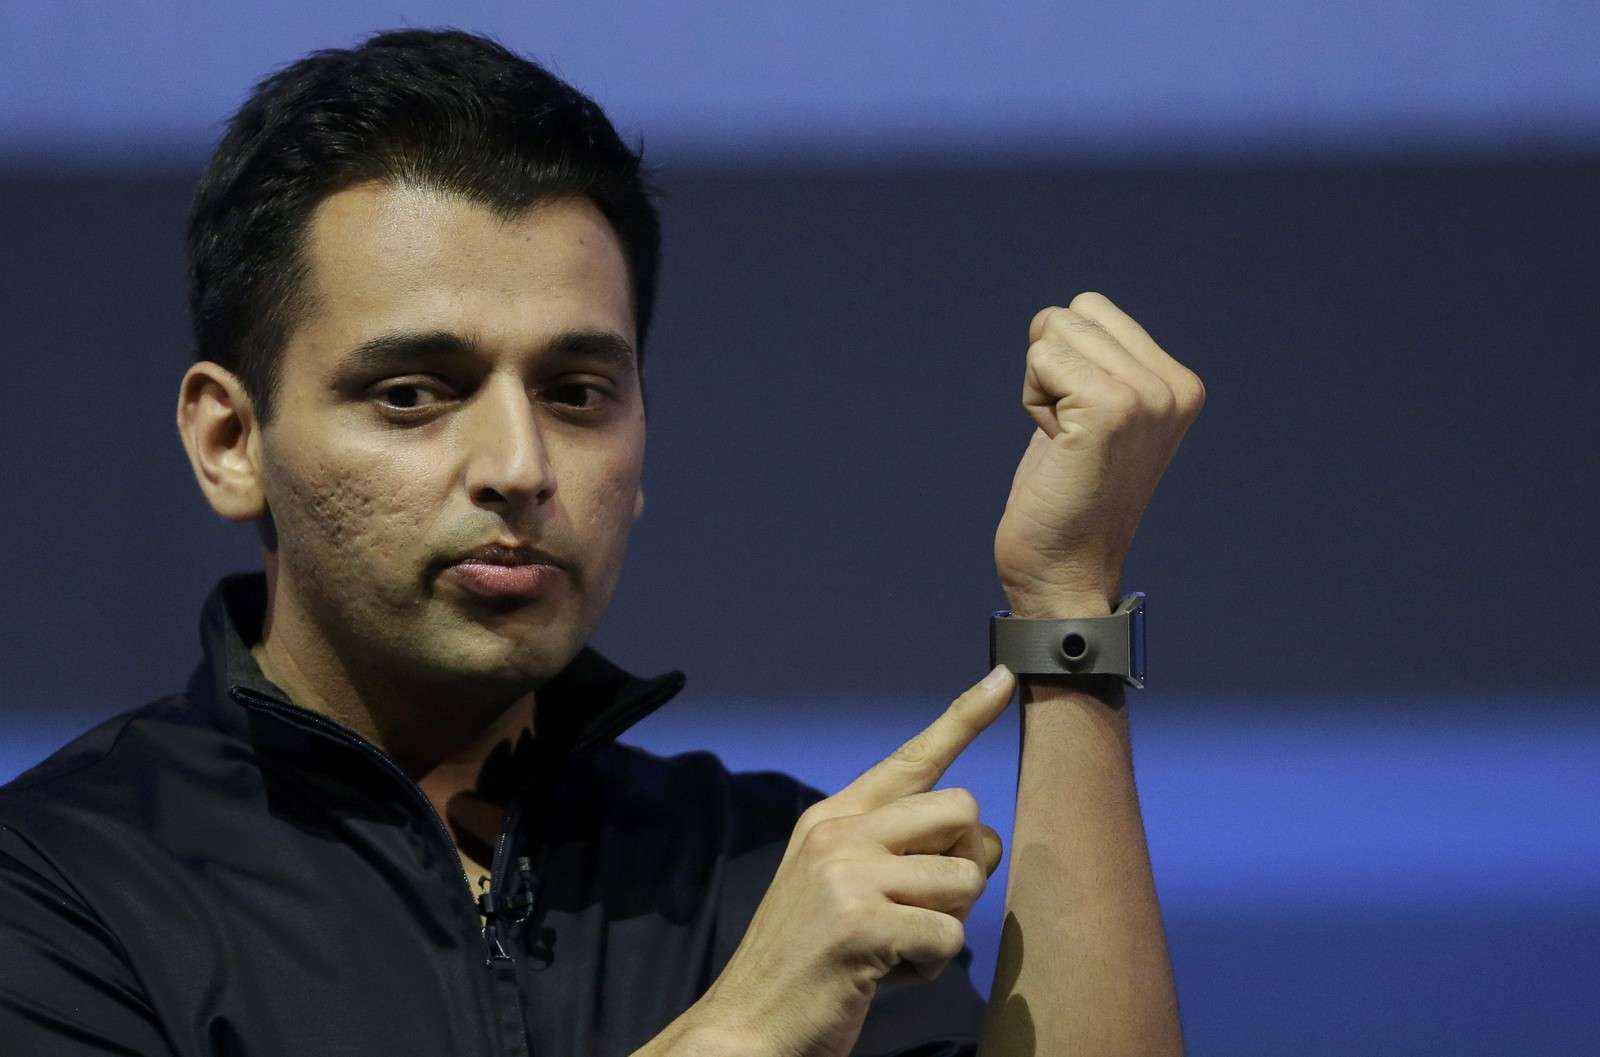 Mistry head of think tank team Samsung Research America presents Samsung Galaxy Gear smartwatch at IFA consumer electronics fair in Berlin